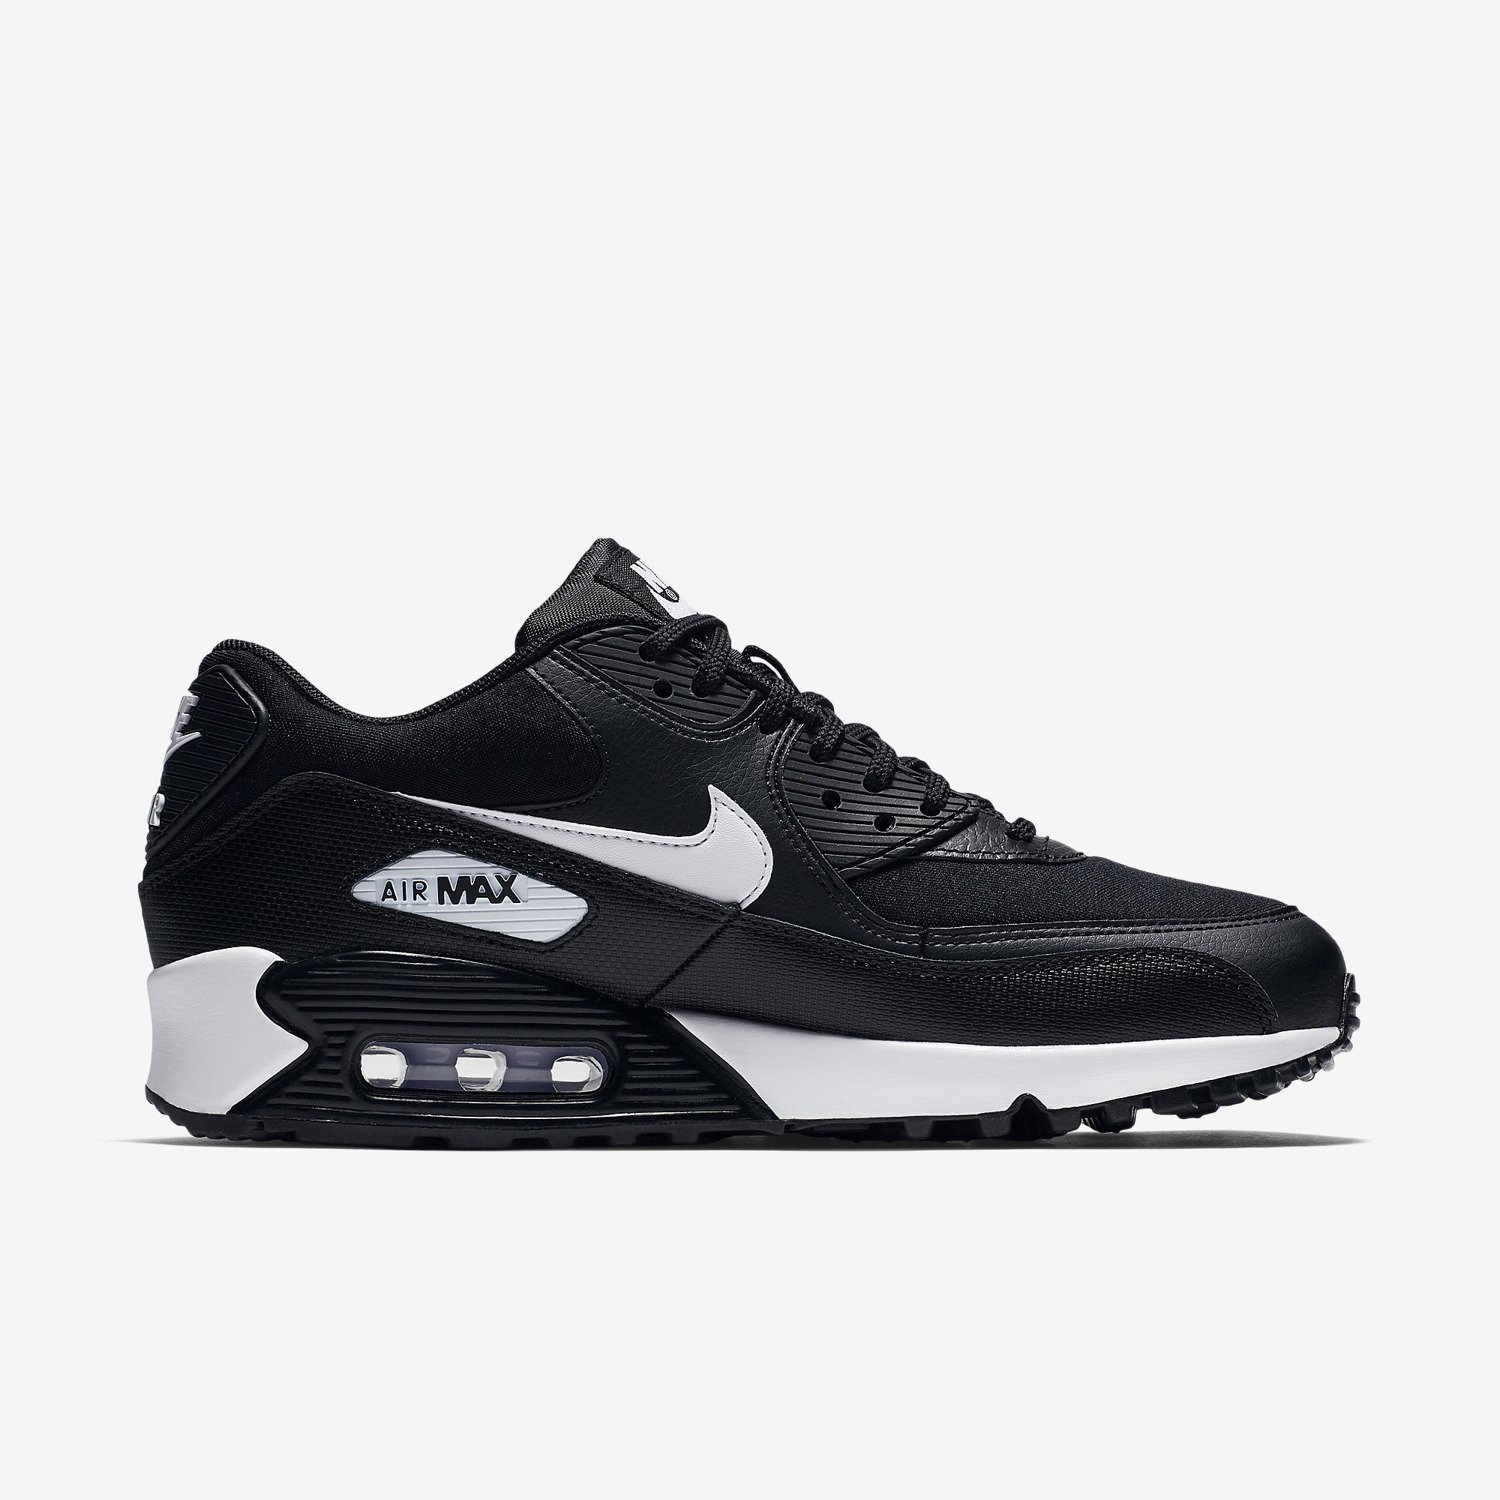 nike air max damskie uk